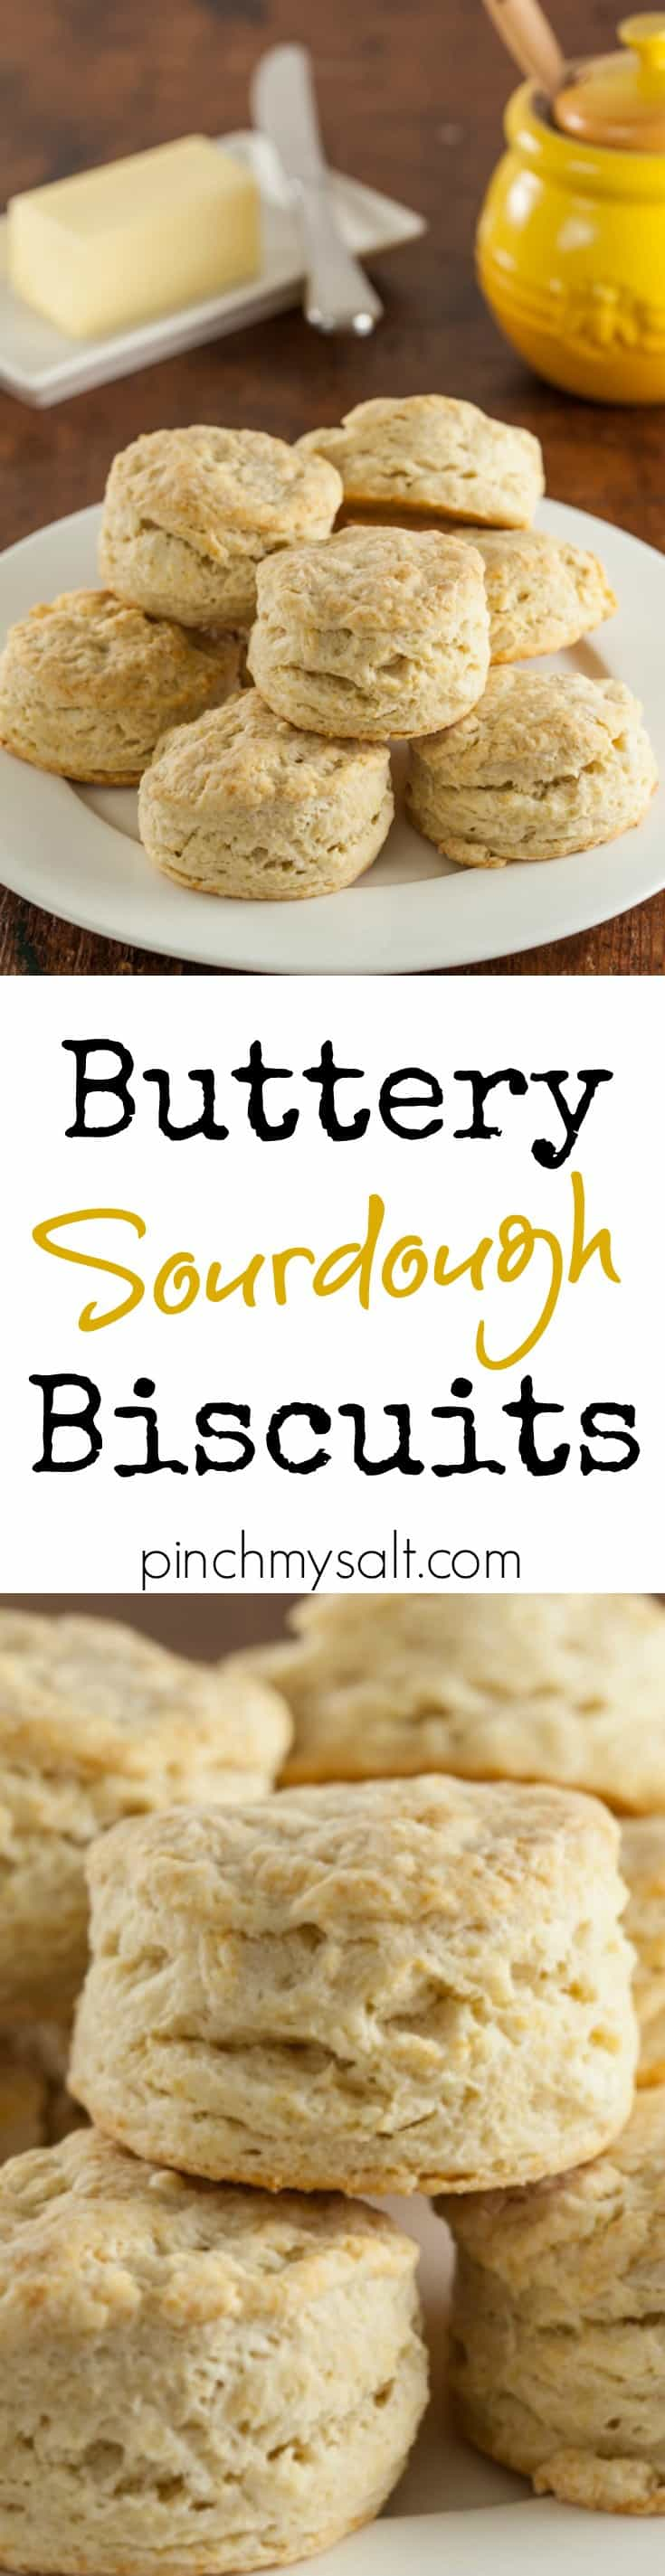 sourdough biscuit recipes